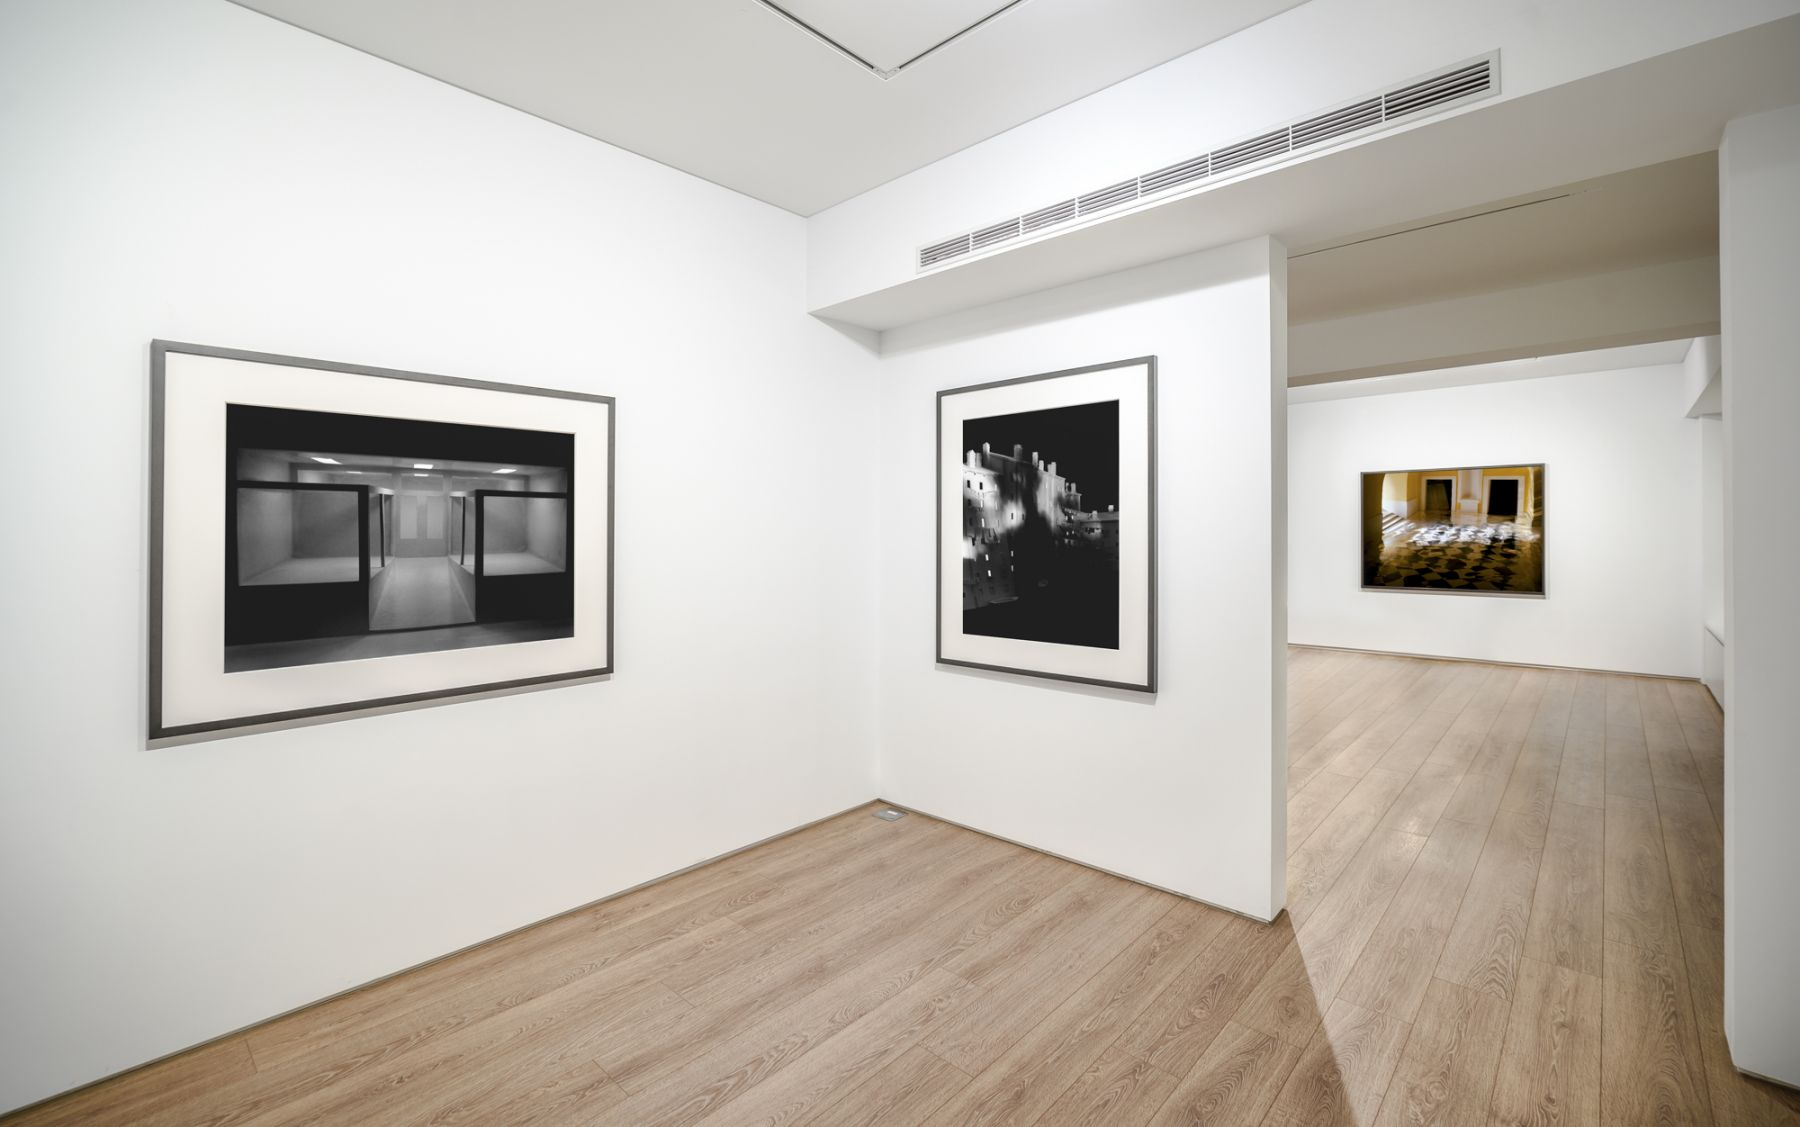 Installation view of James Casebere: Built Images at Sean Kelly Asia